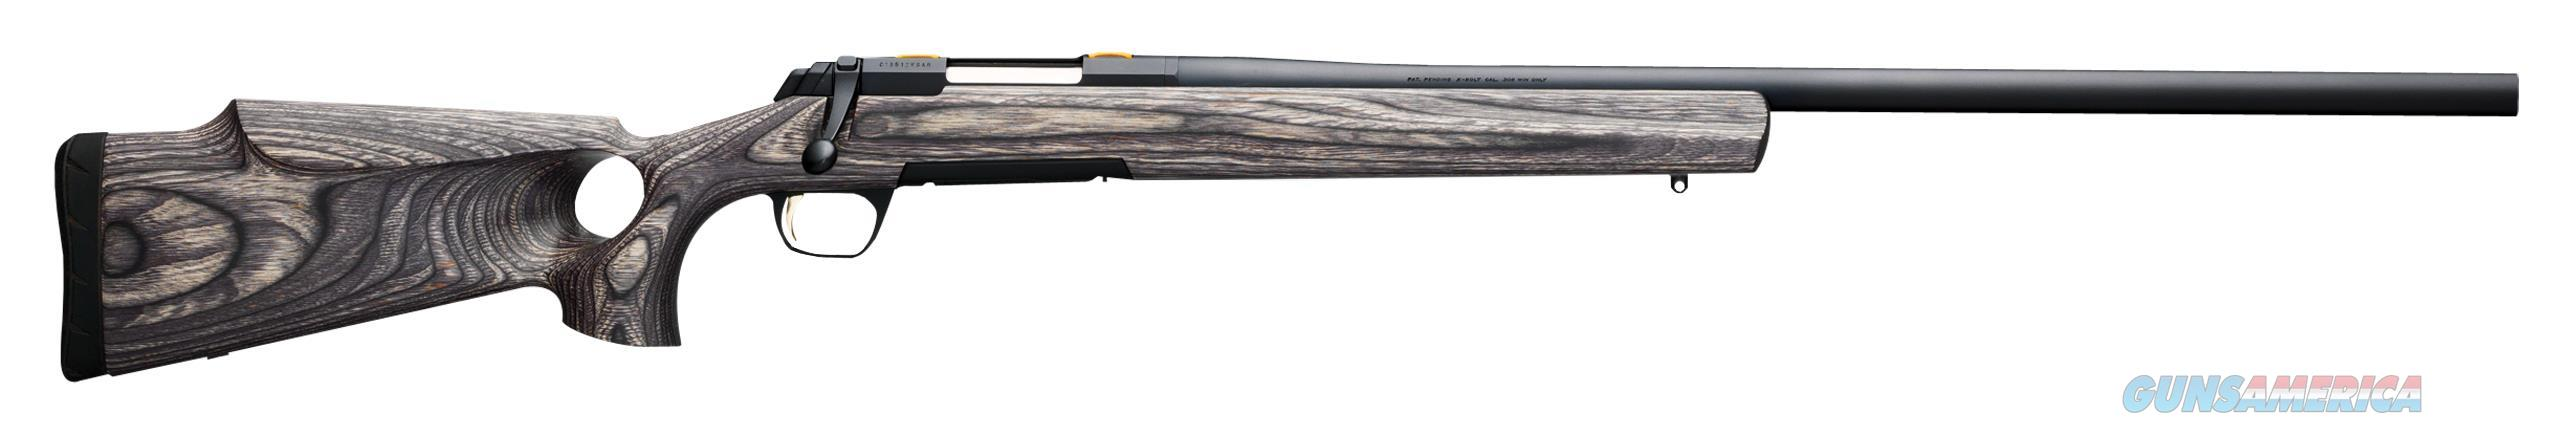 BROWNING XBOLT ECLIPSE 223REM VARMINT NS 035338208  Guns > Rifles > Browning Rifles > Bolt Action > Hunting > Blue